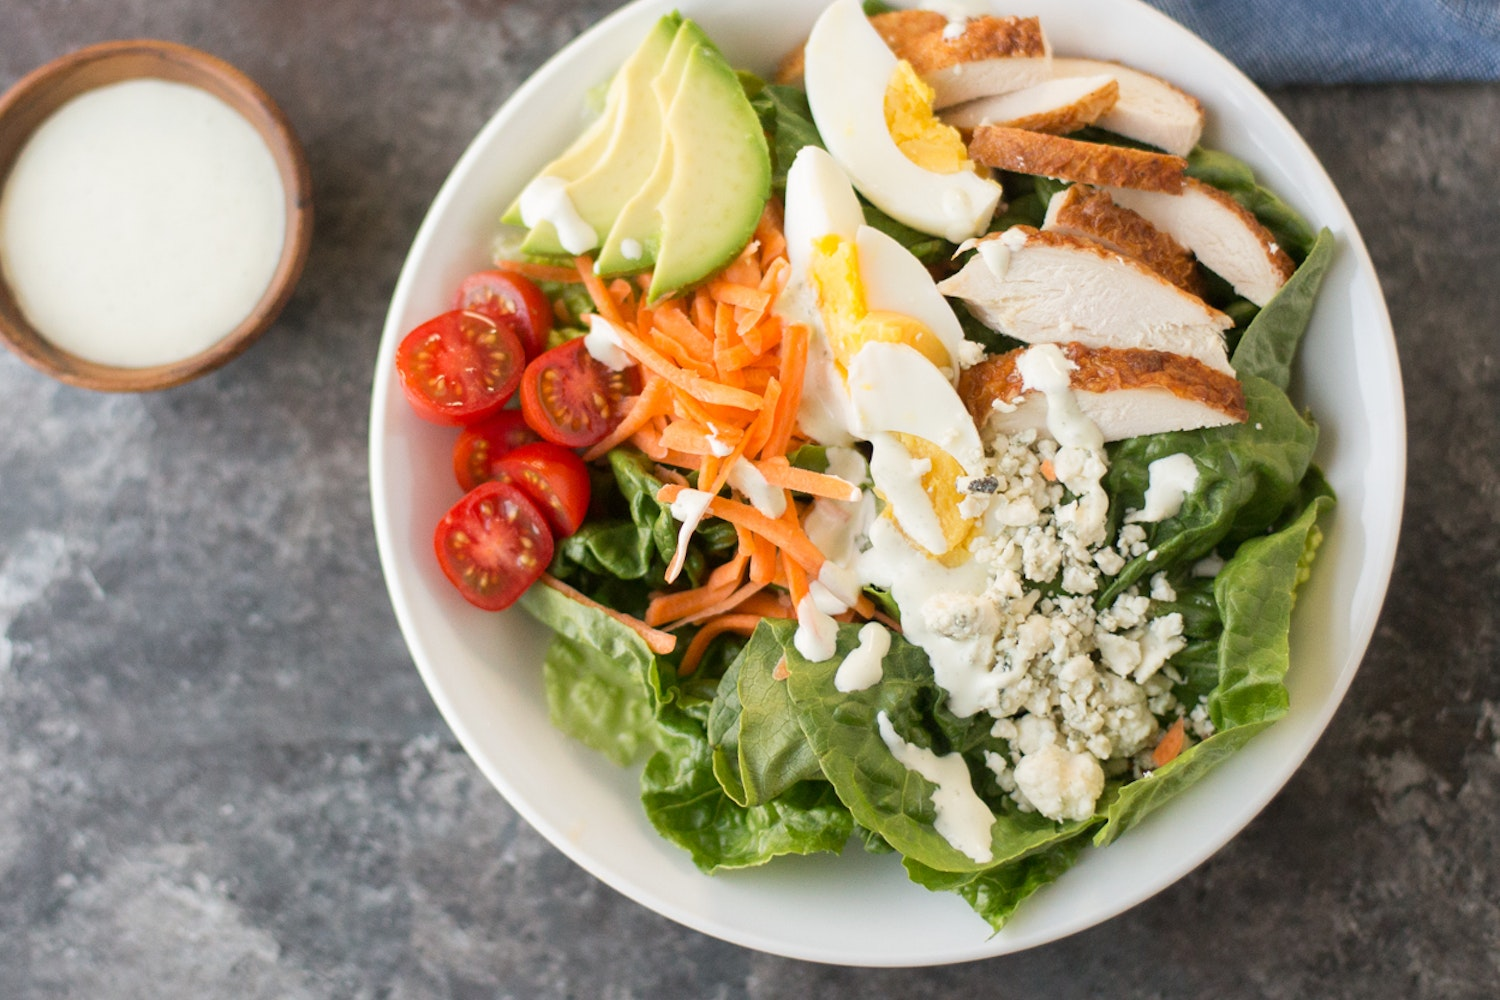 20180514 rotisserie chicken cobb salad nm 4.jpg?ixlib=rails 2.1